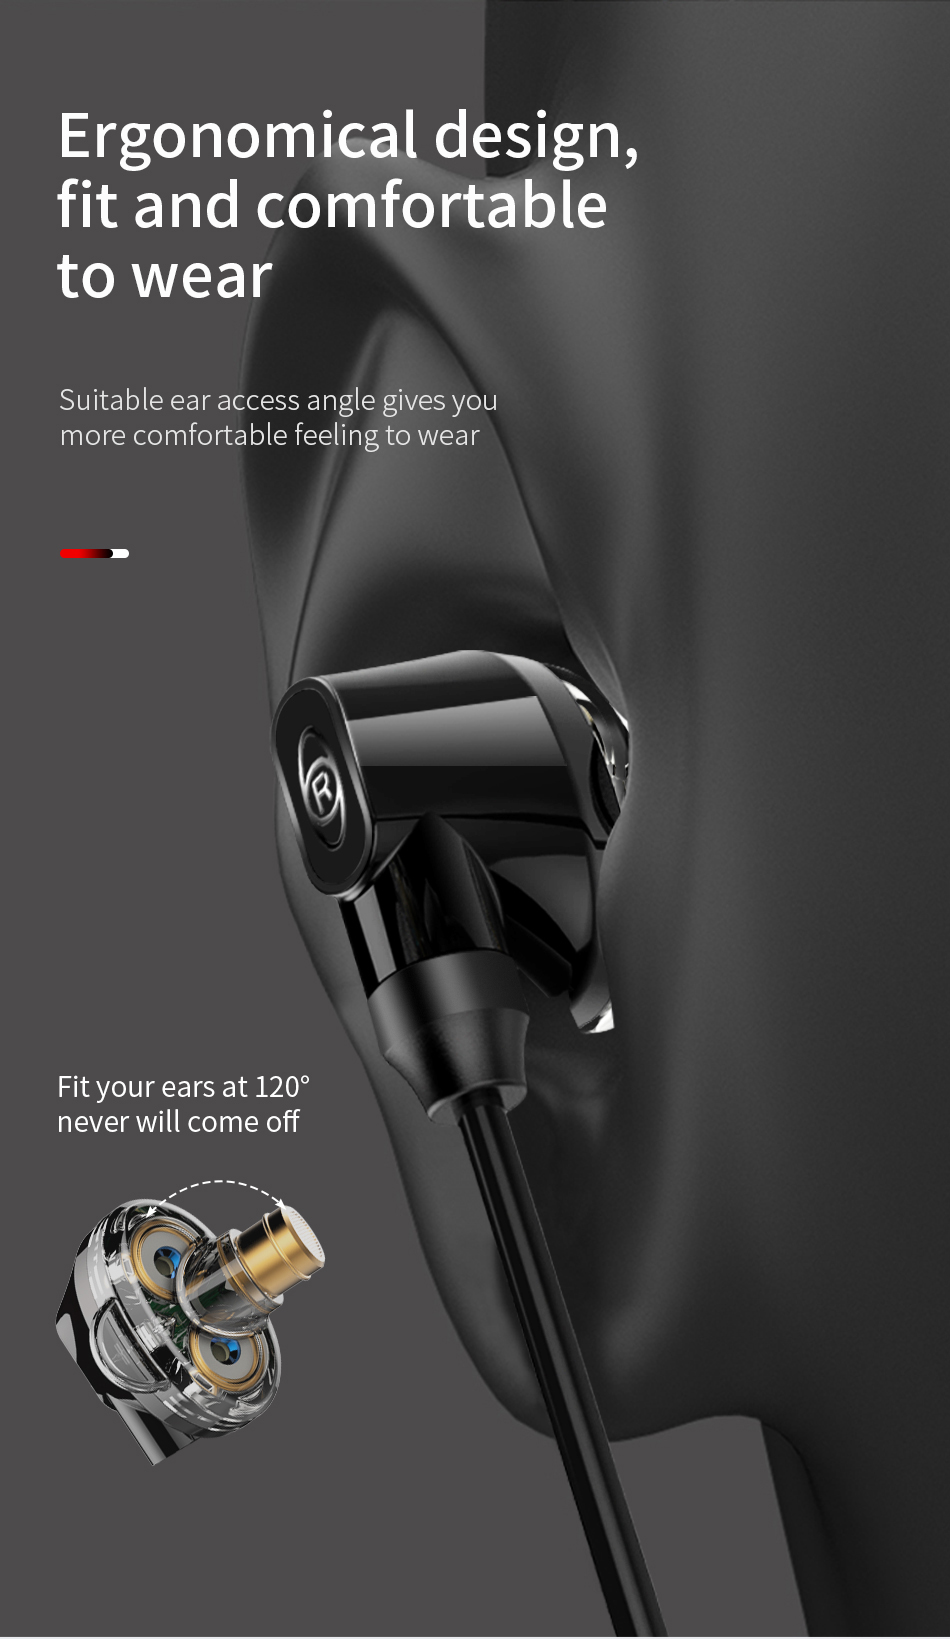 Baseus Encok H10 HiFi Dual Dynamic Earphone 3.5mm Wired Stereo Headphone with Mic for iPhone Xiaomi